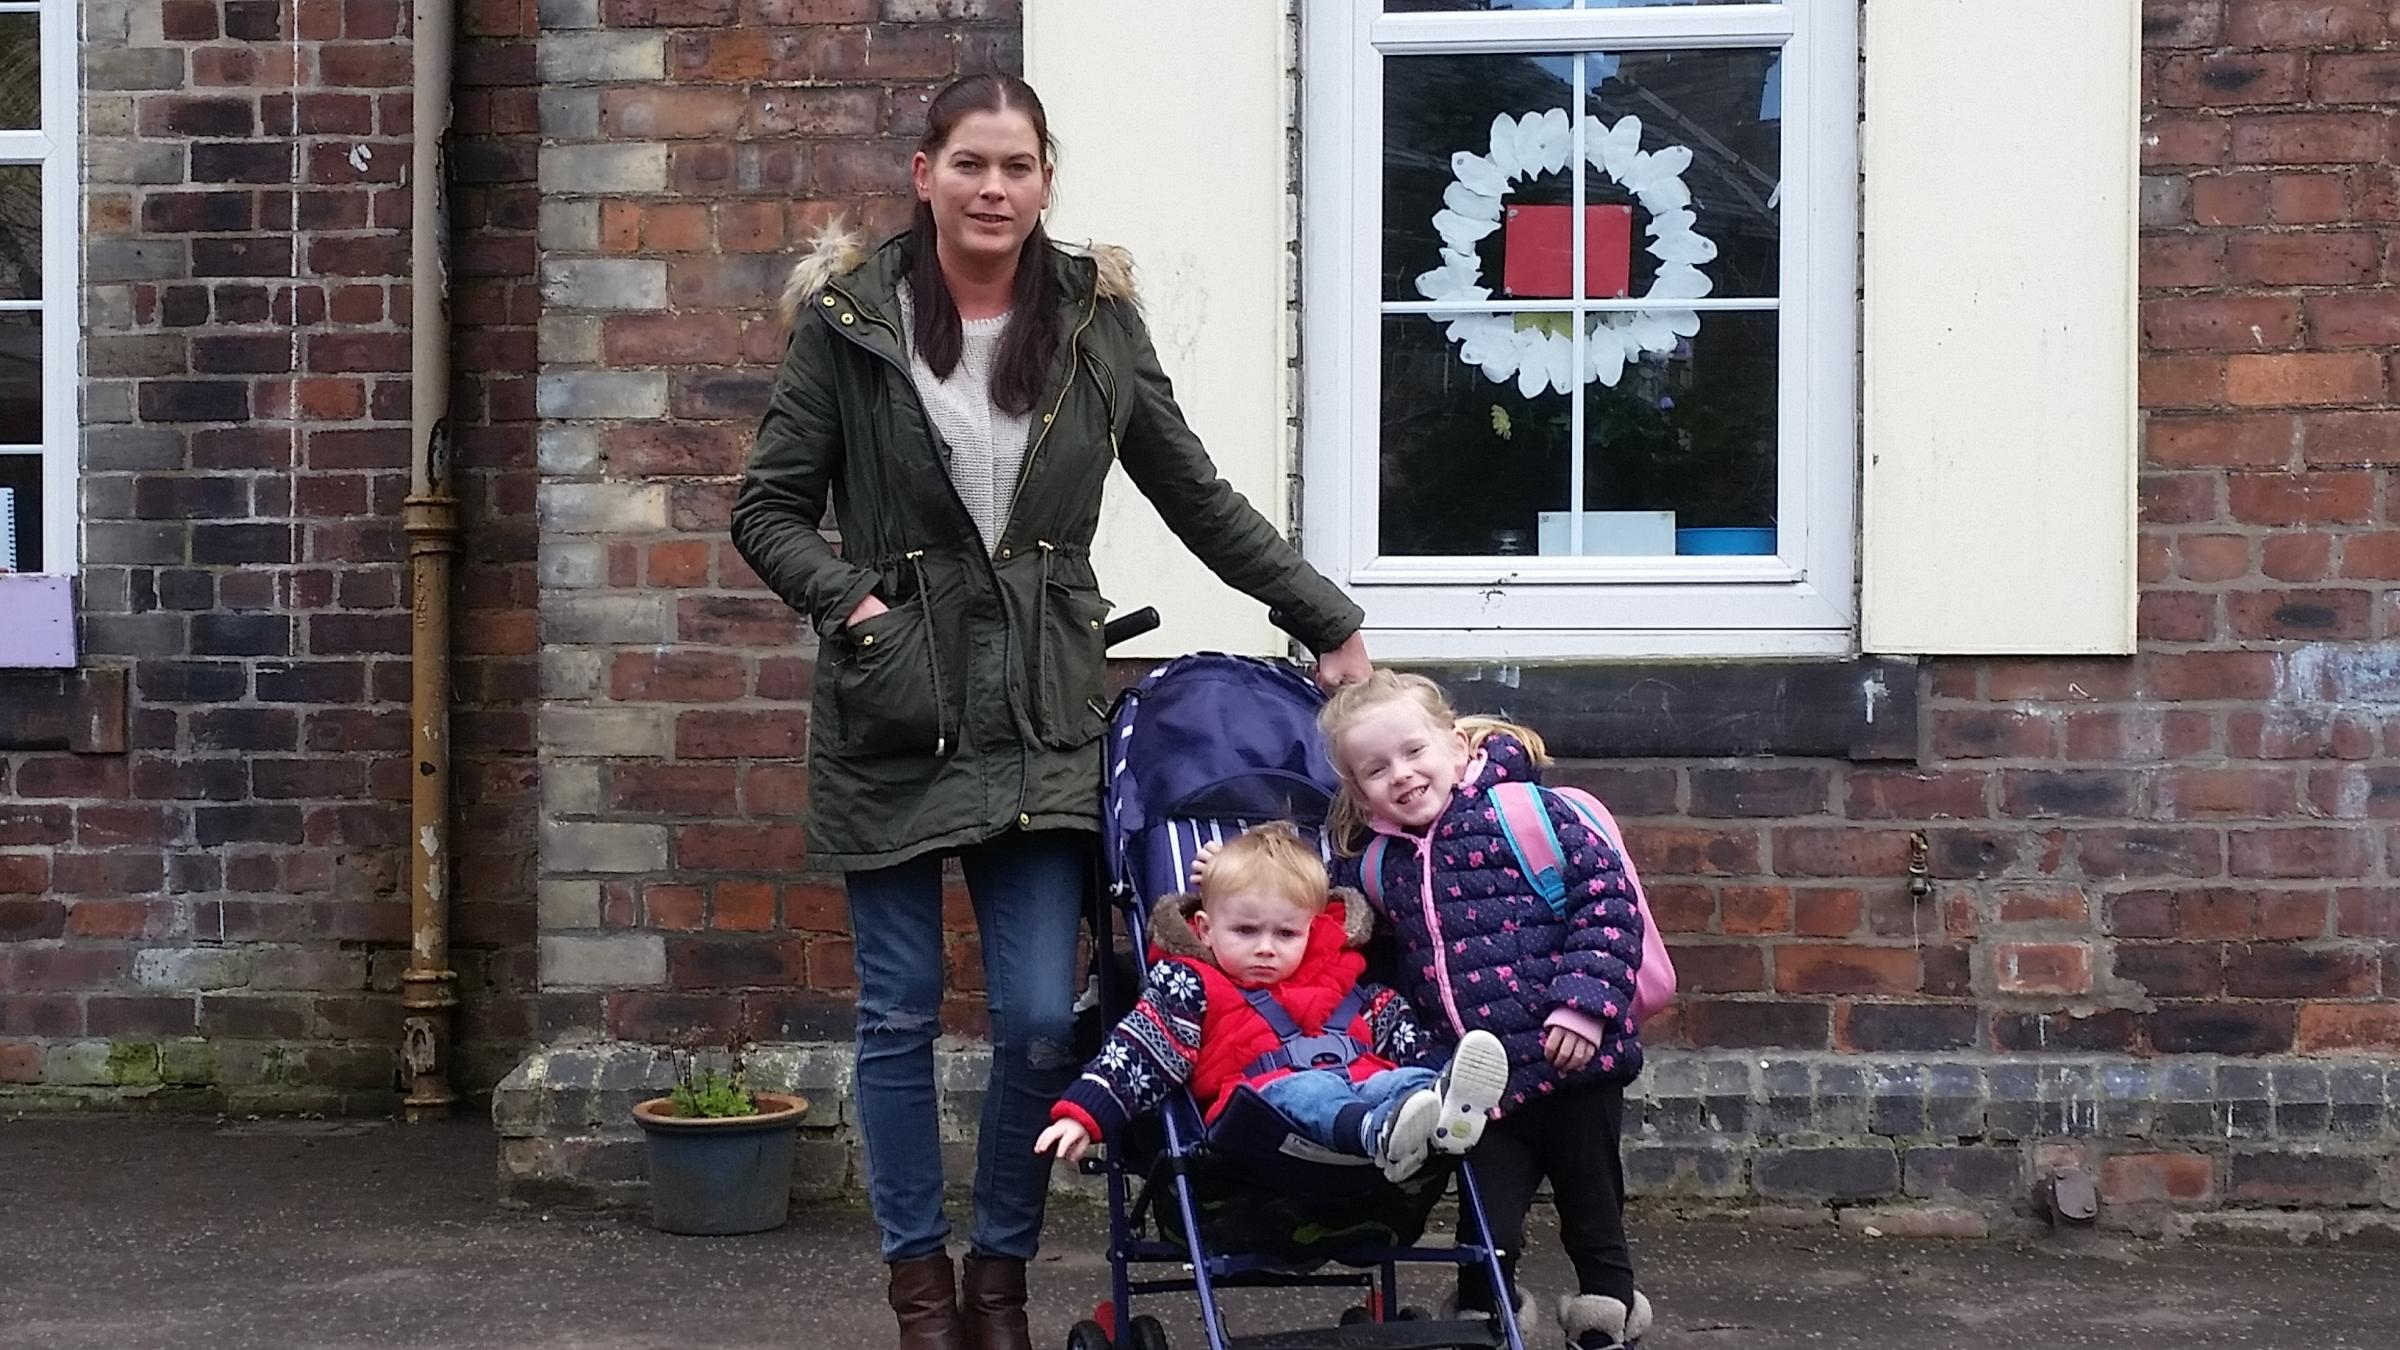 Sarah Goonan and her children are among those hit by the charge